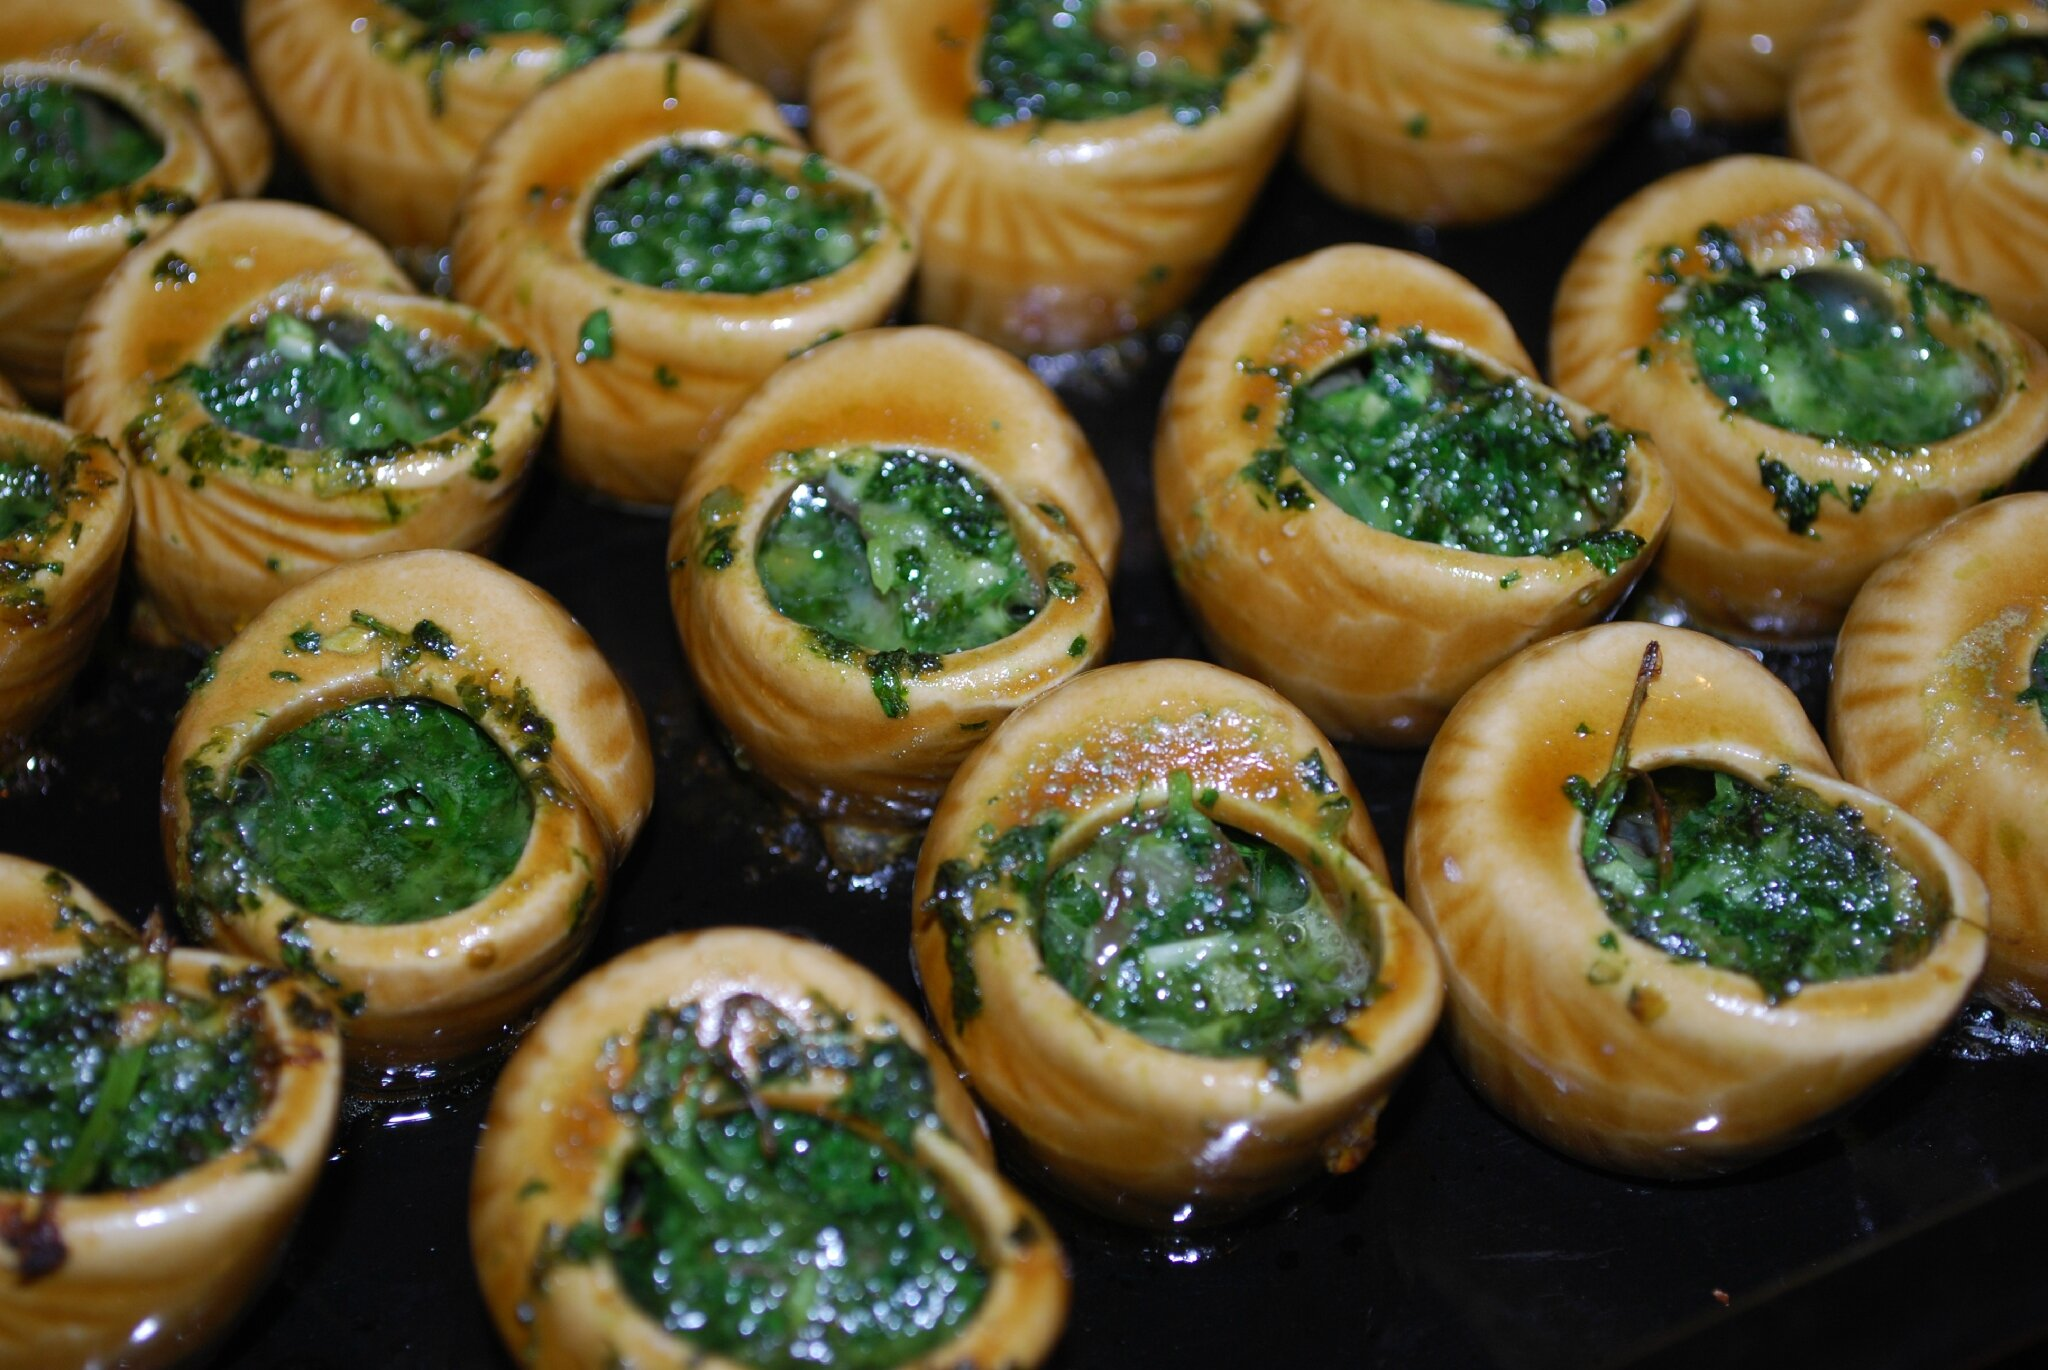 Fourchette escargot pdia